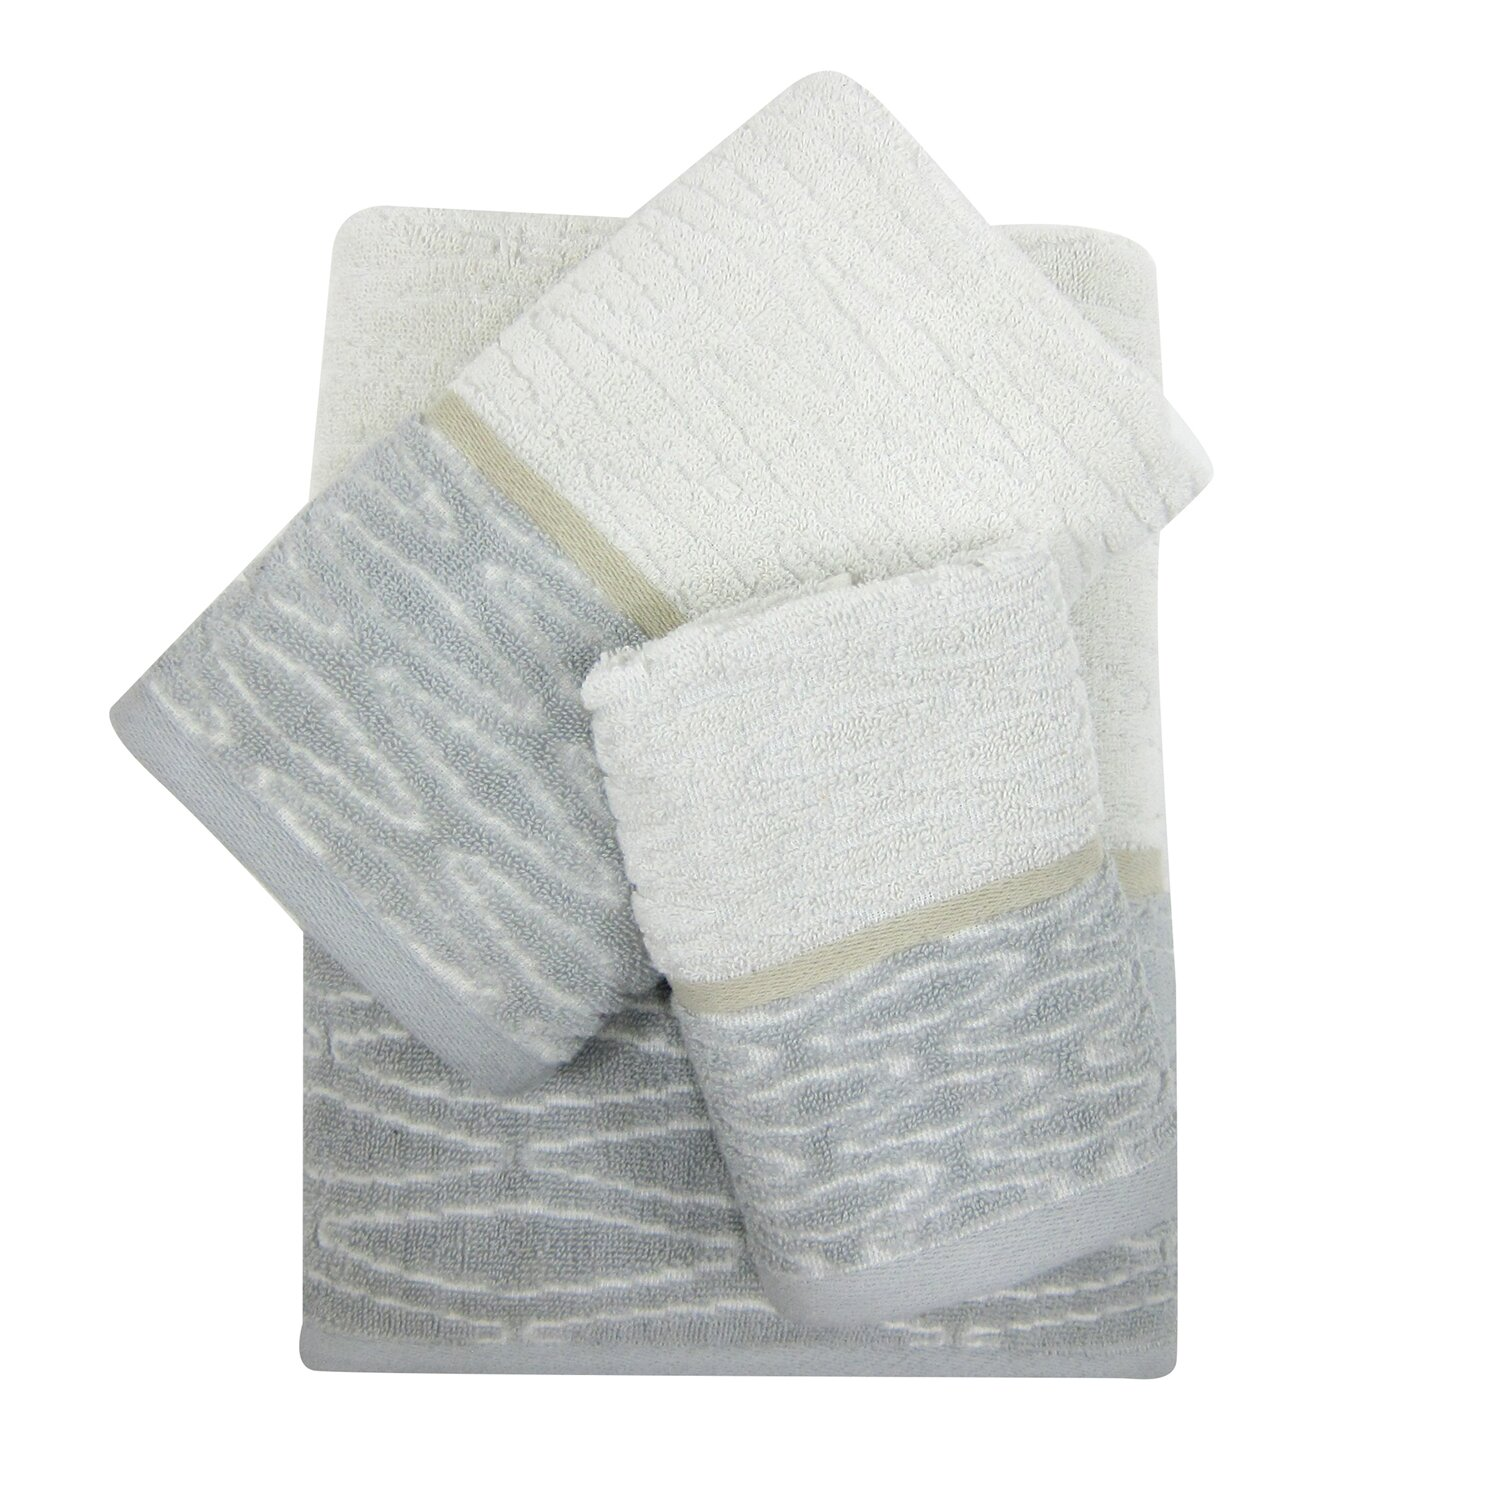 Croscill Hand Towels: Croscill Aqualonia Cotton Hand Towel & Reviews